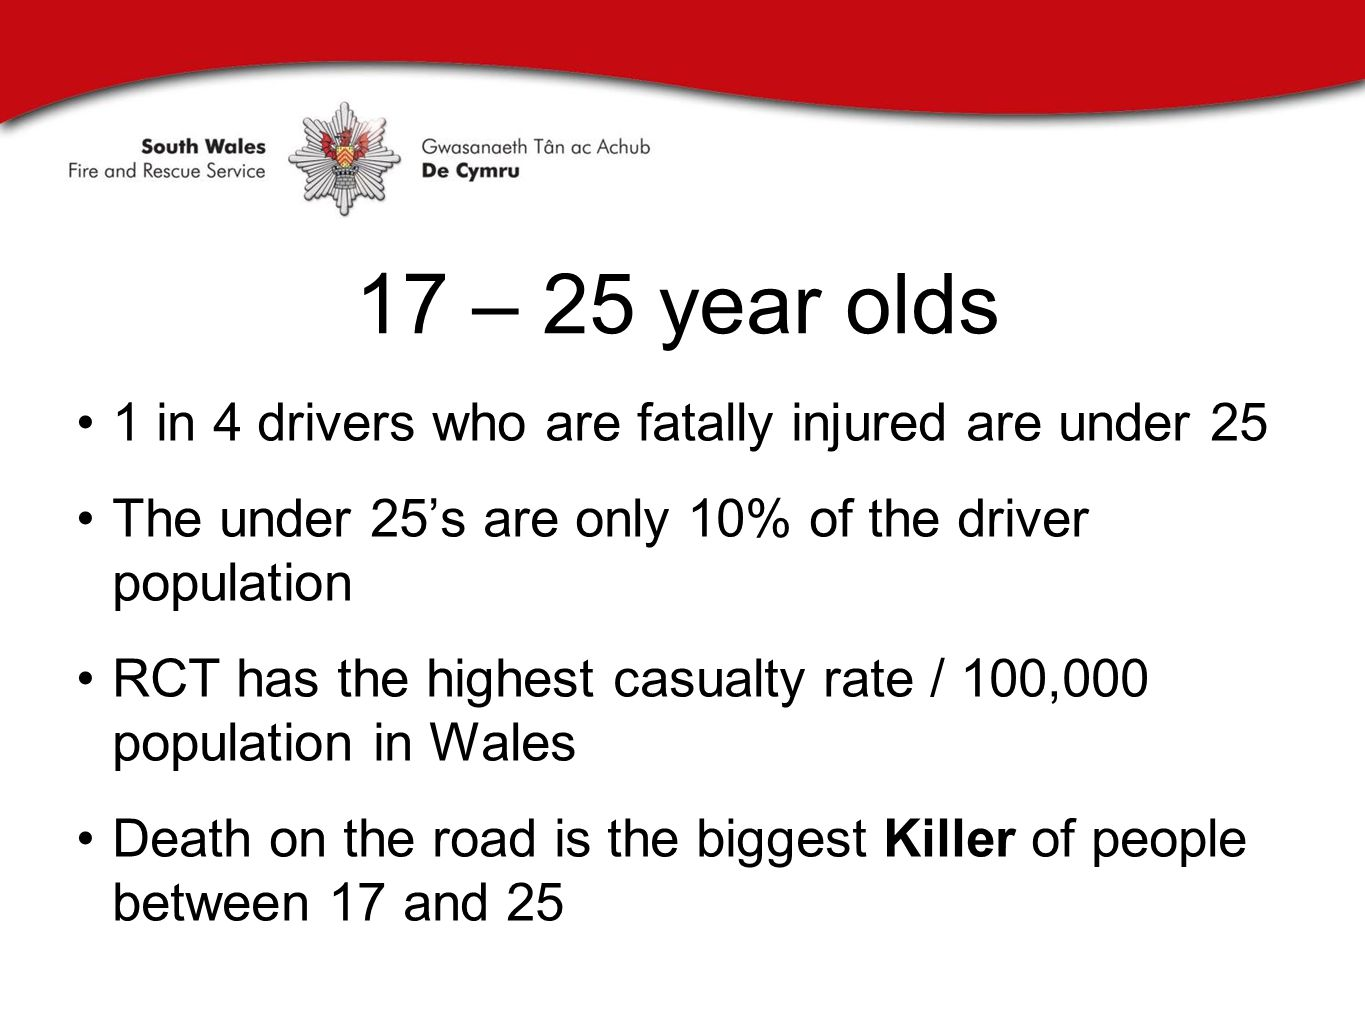 17 – 25 year olds 1 in 4 drivers who are fatally injured are under 25 The under 25's are only 10% of the driver population RCT has the highest casualty rate / 100,000 population in Wales Death on the road is the biggest Killer of people between 17 and 25